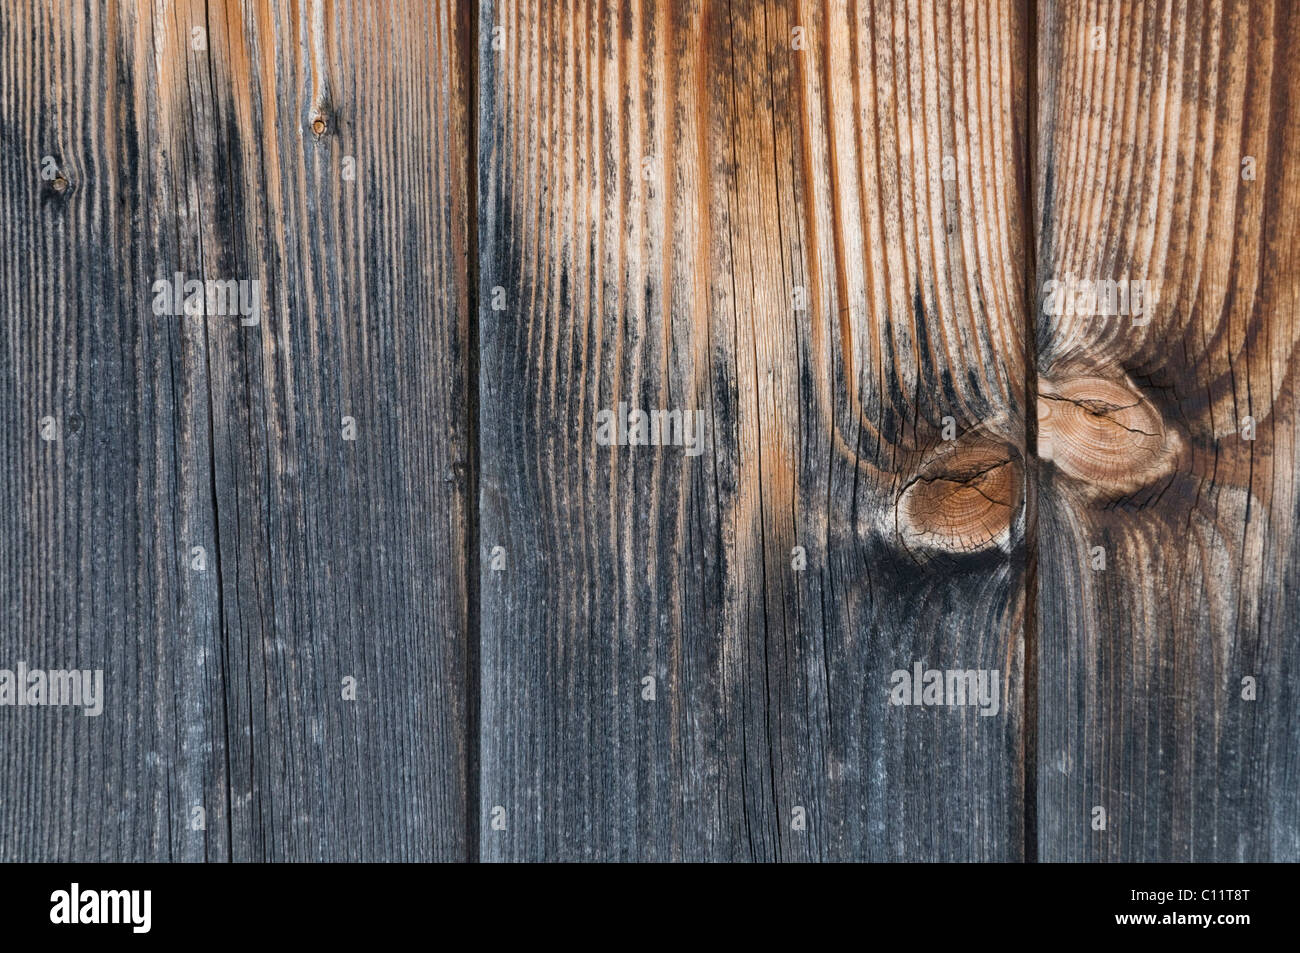 Detail, wooden partition, knots on weathered wood, background - Stock Image